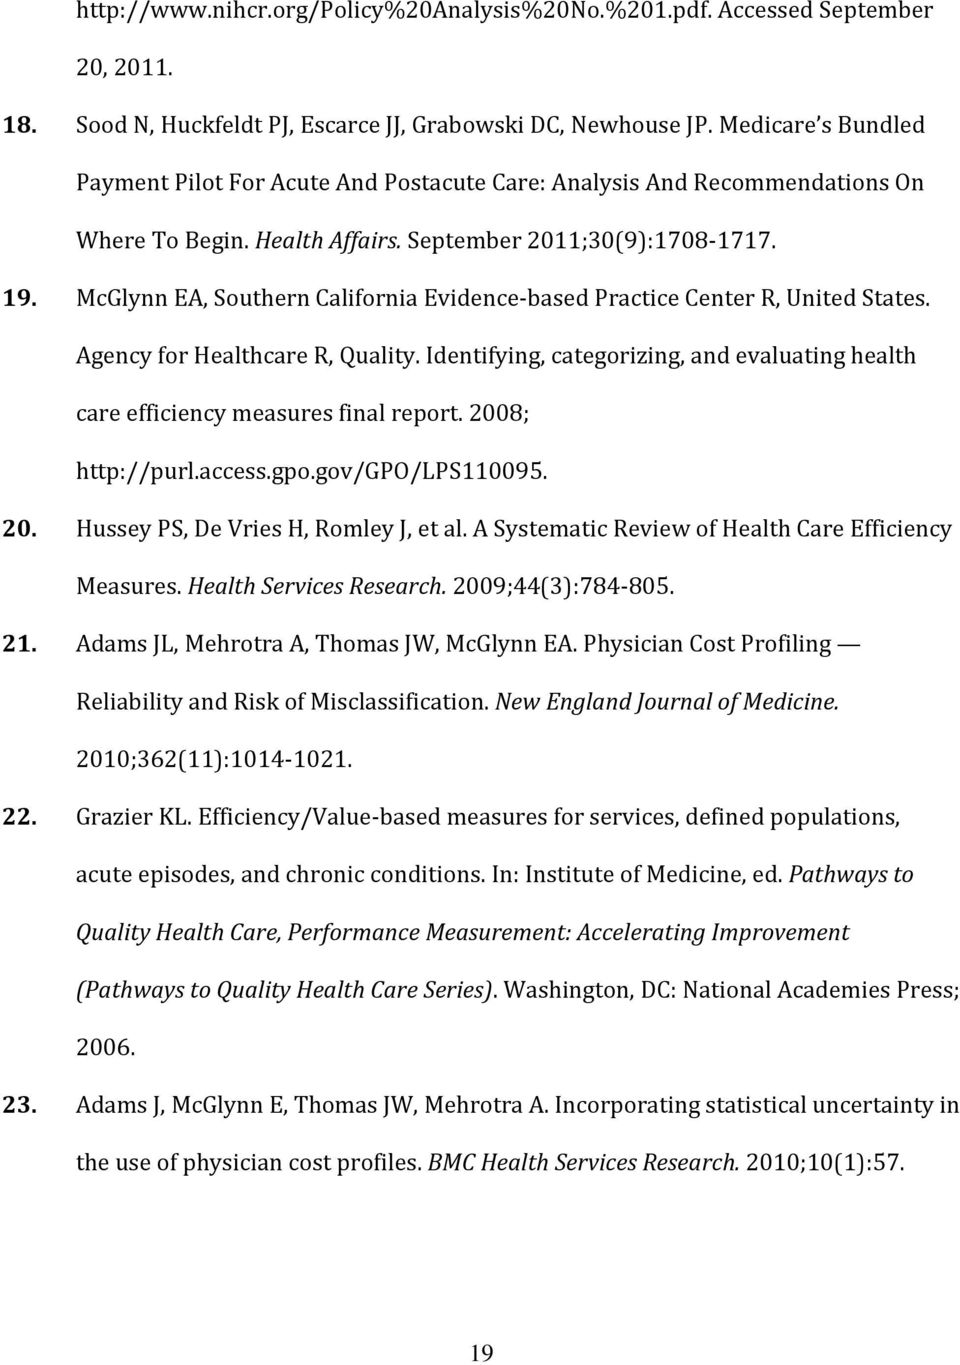 McGlynn EA, Southern California Evidence-based Practice Center R, United States. Agency for Healthcare R, Quality.